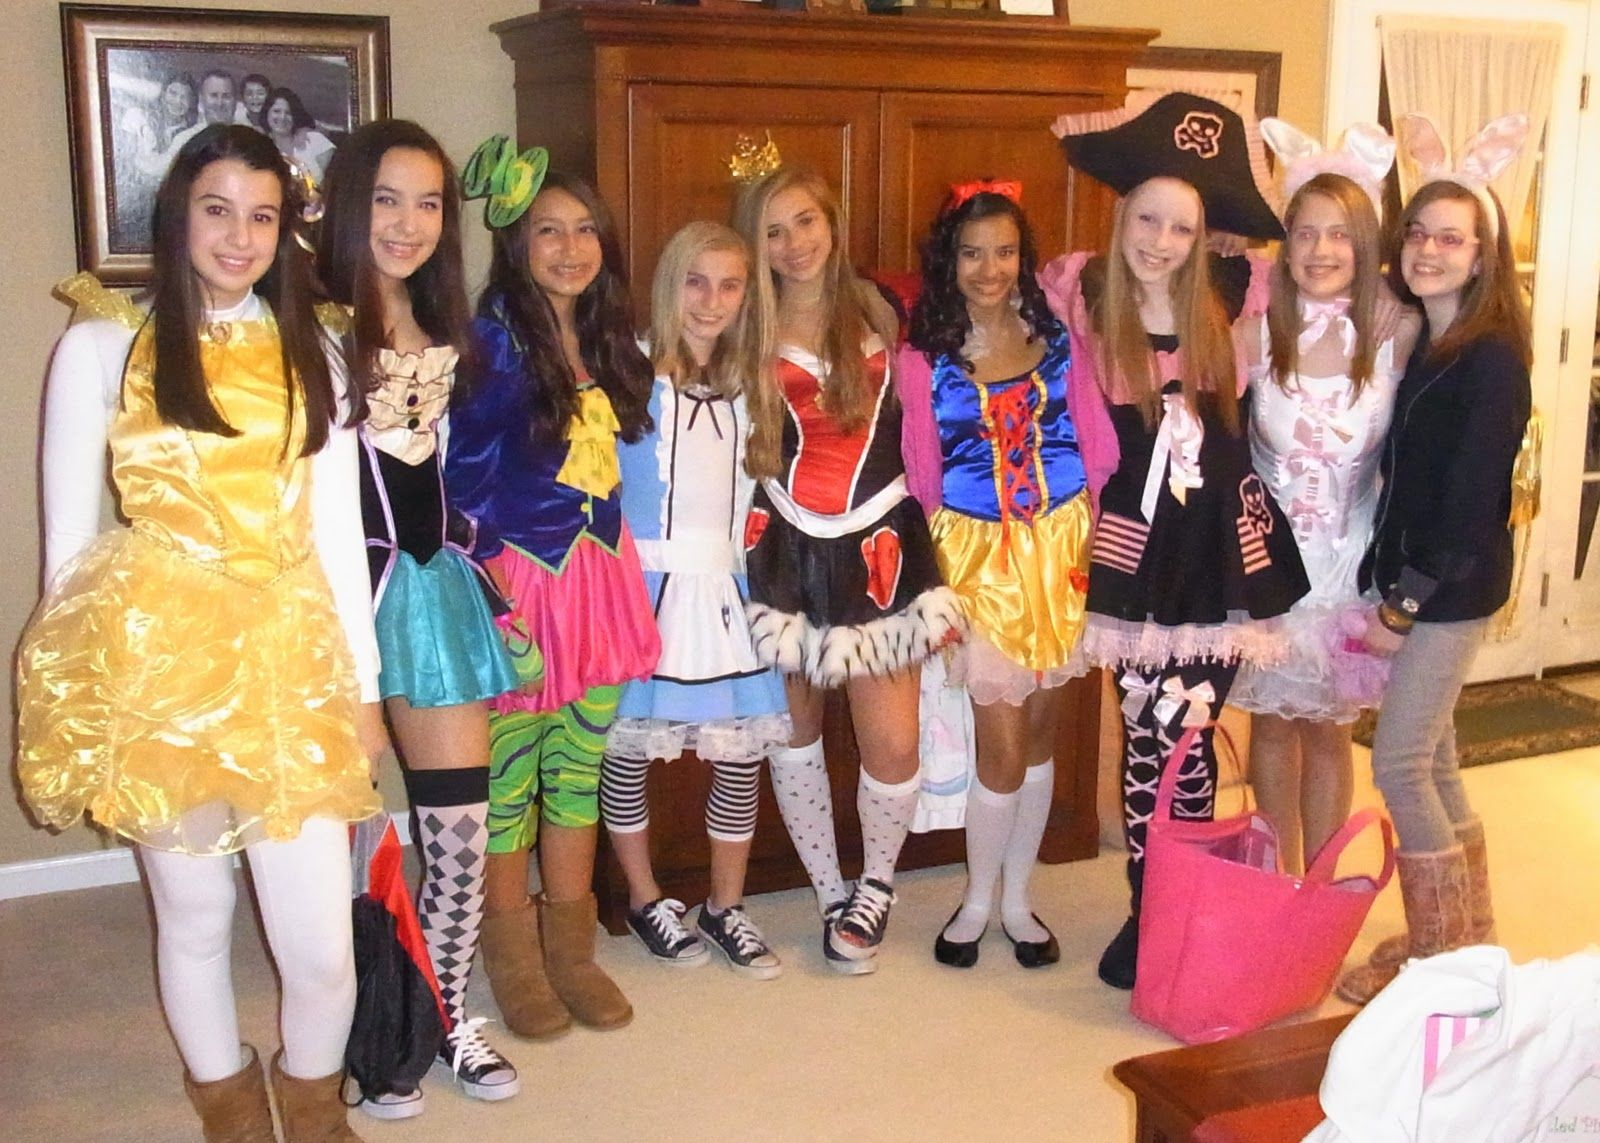 pinflankkks . on cool halloween outfits | pinterest | halloween